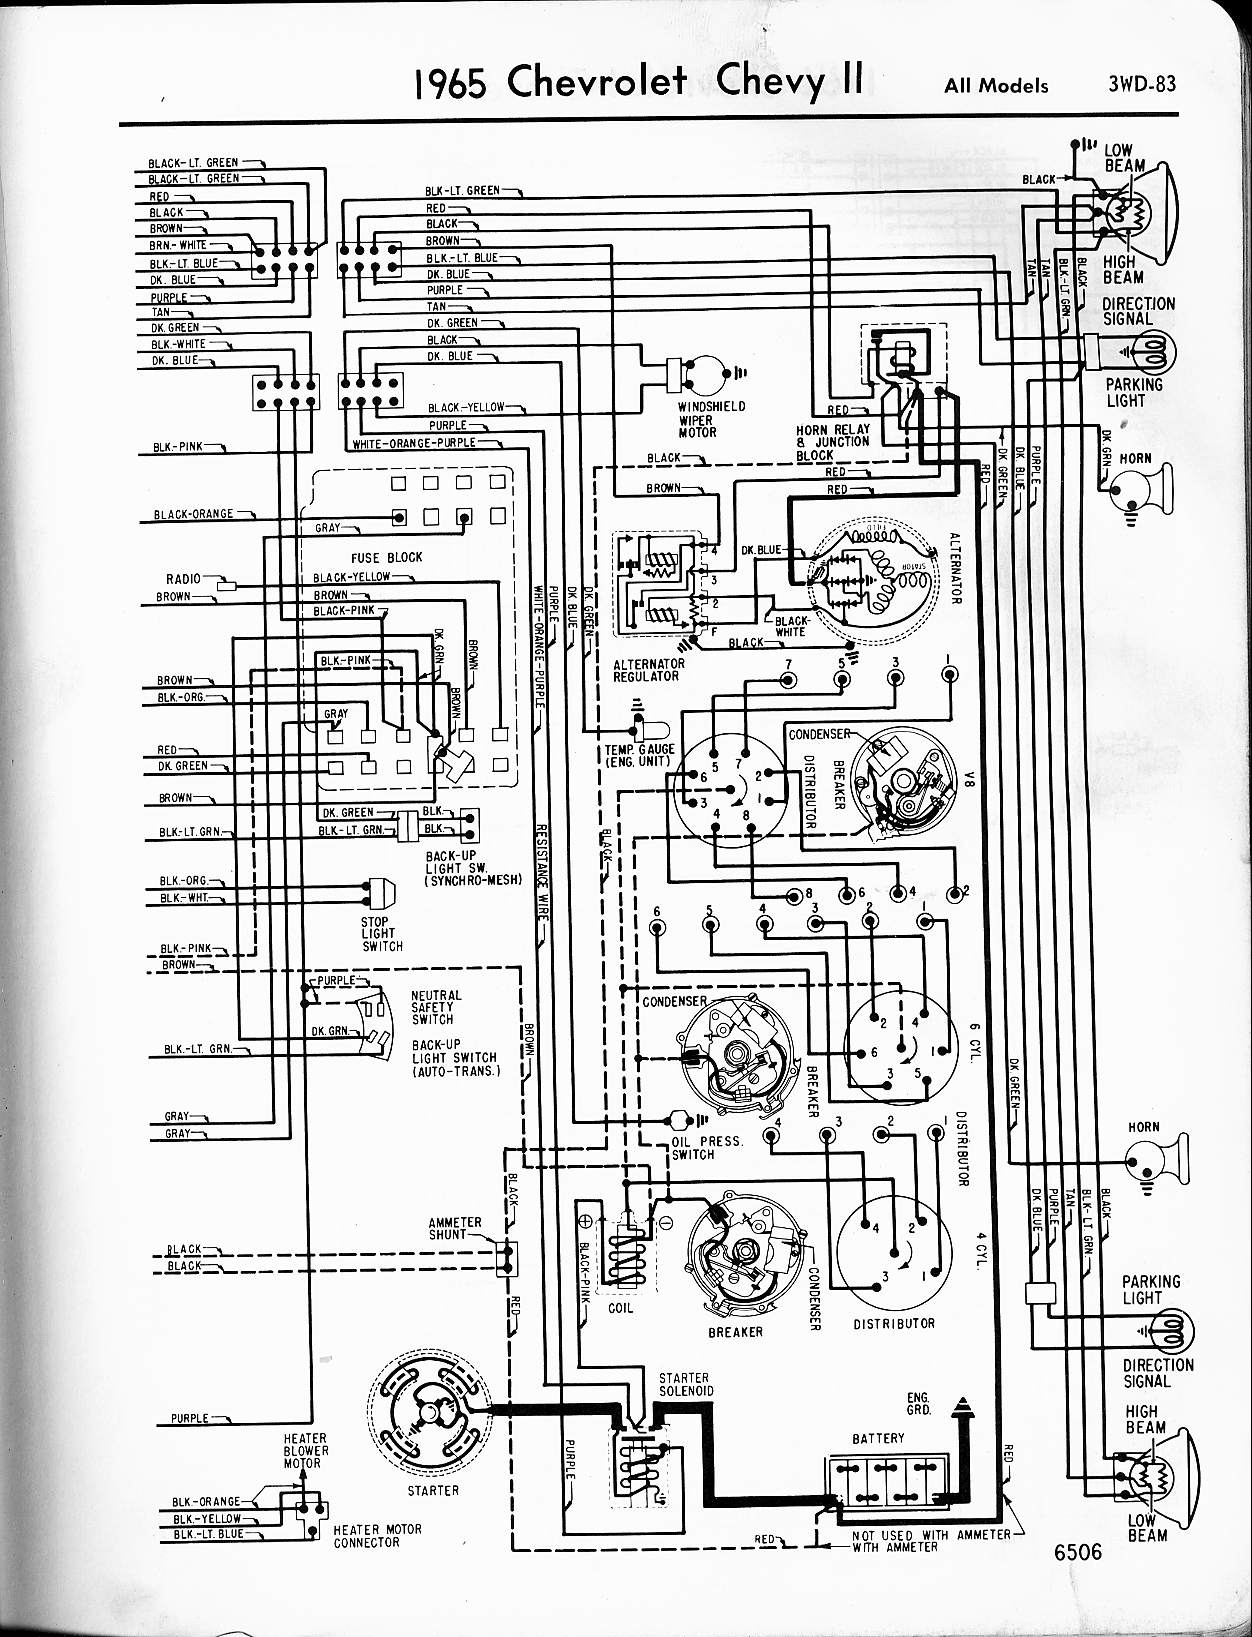 1965 Headlight Wire Harness Diagram All Wiring Data John Deere 4020 Light Switch Chevy Diagrams Bmw